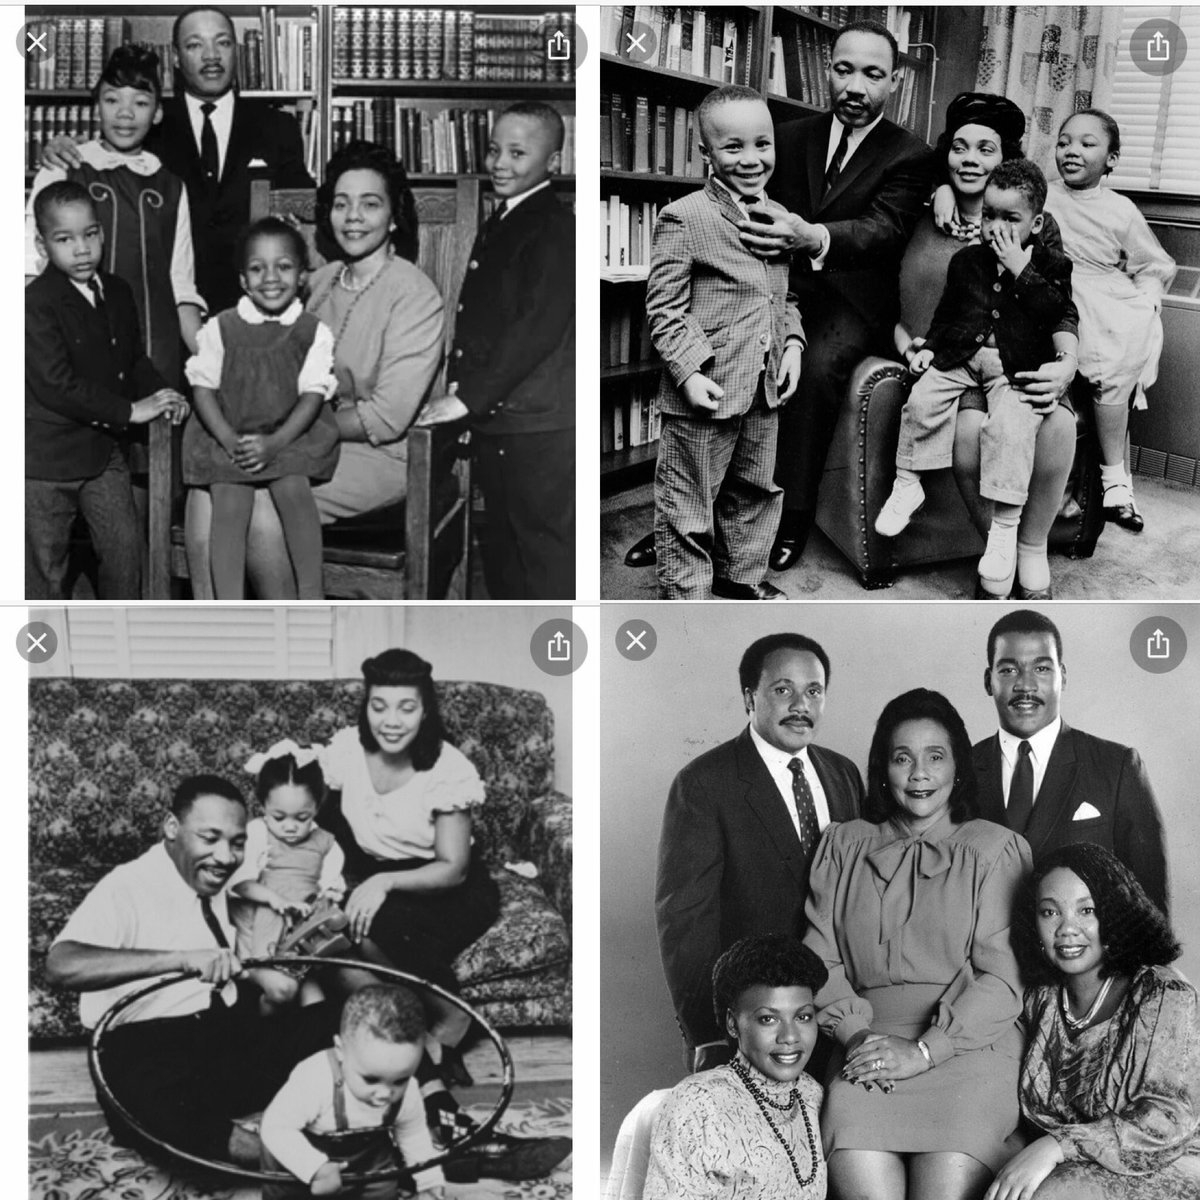 """#MLKDay #CorettaScottKing There's a reason why they say """"Behind every great man is a wonderful woman!"""" We pray together they both are resting in eternal peace And we thank them always for leading the way... ✝️💜#CivilRightsMovement"""